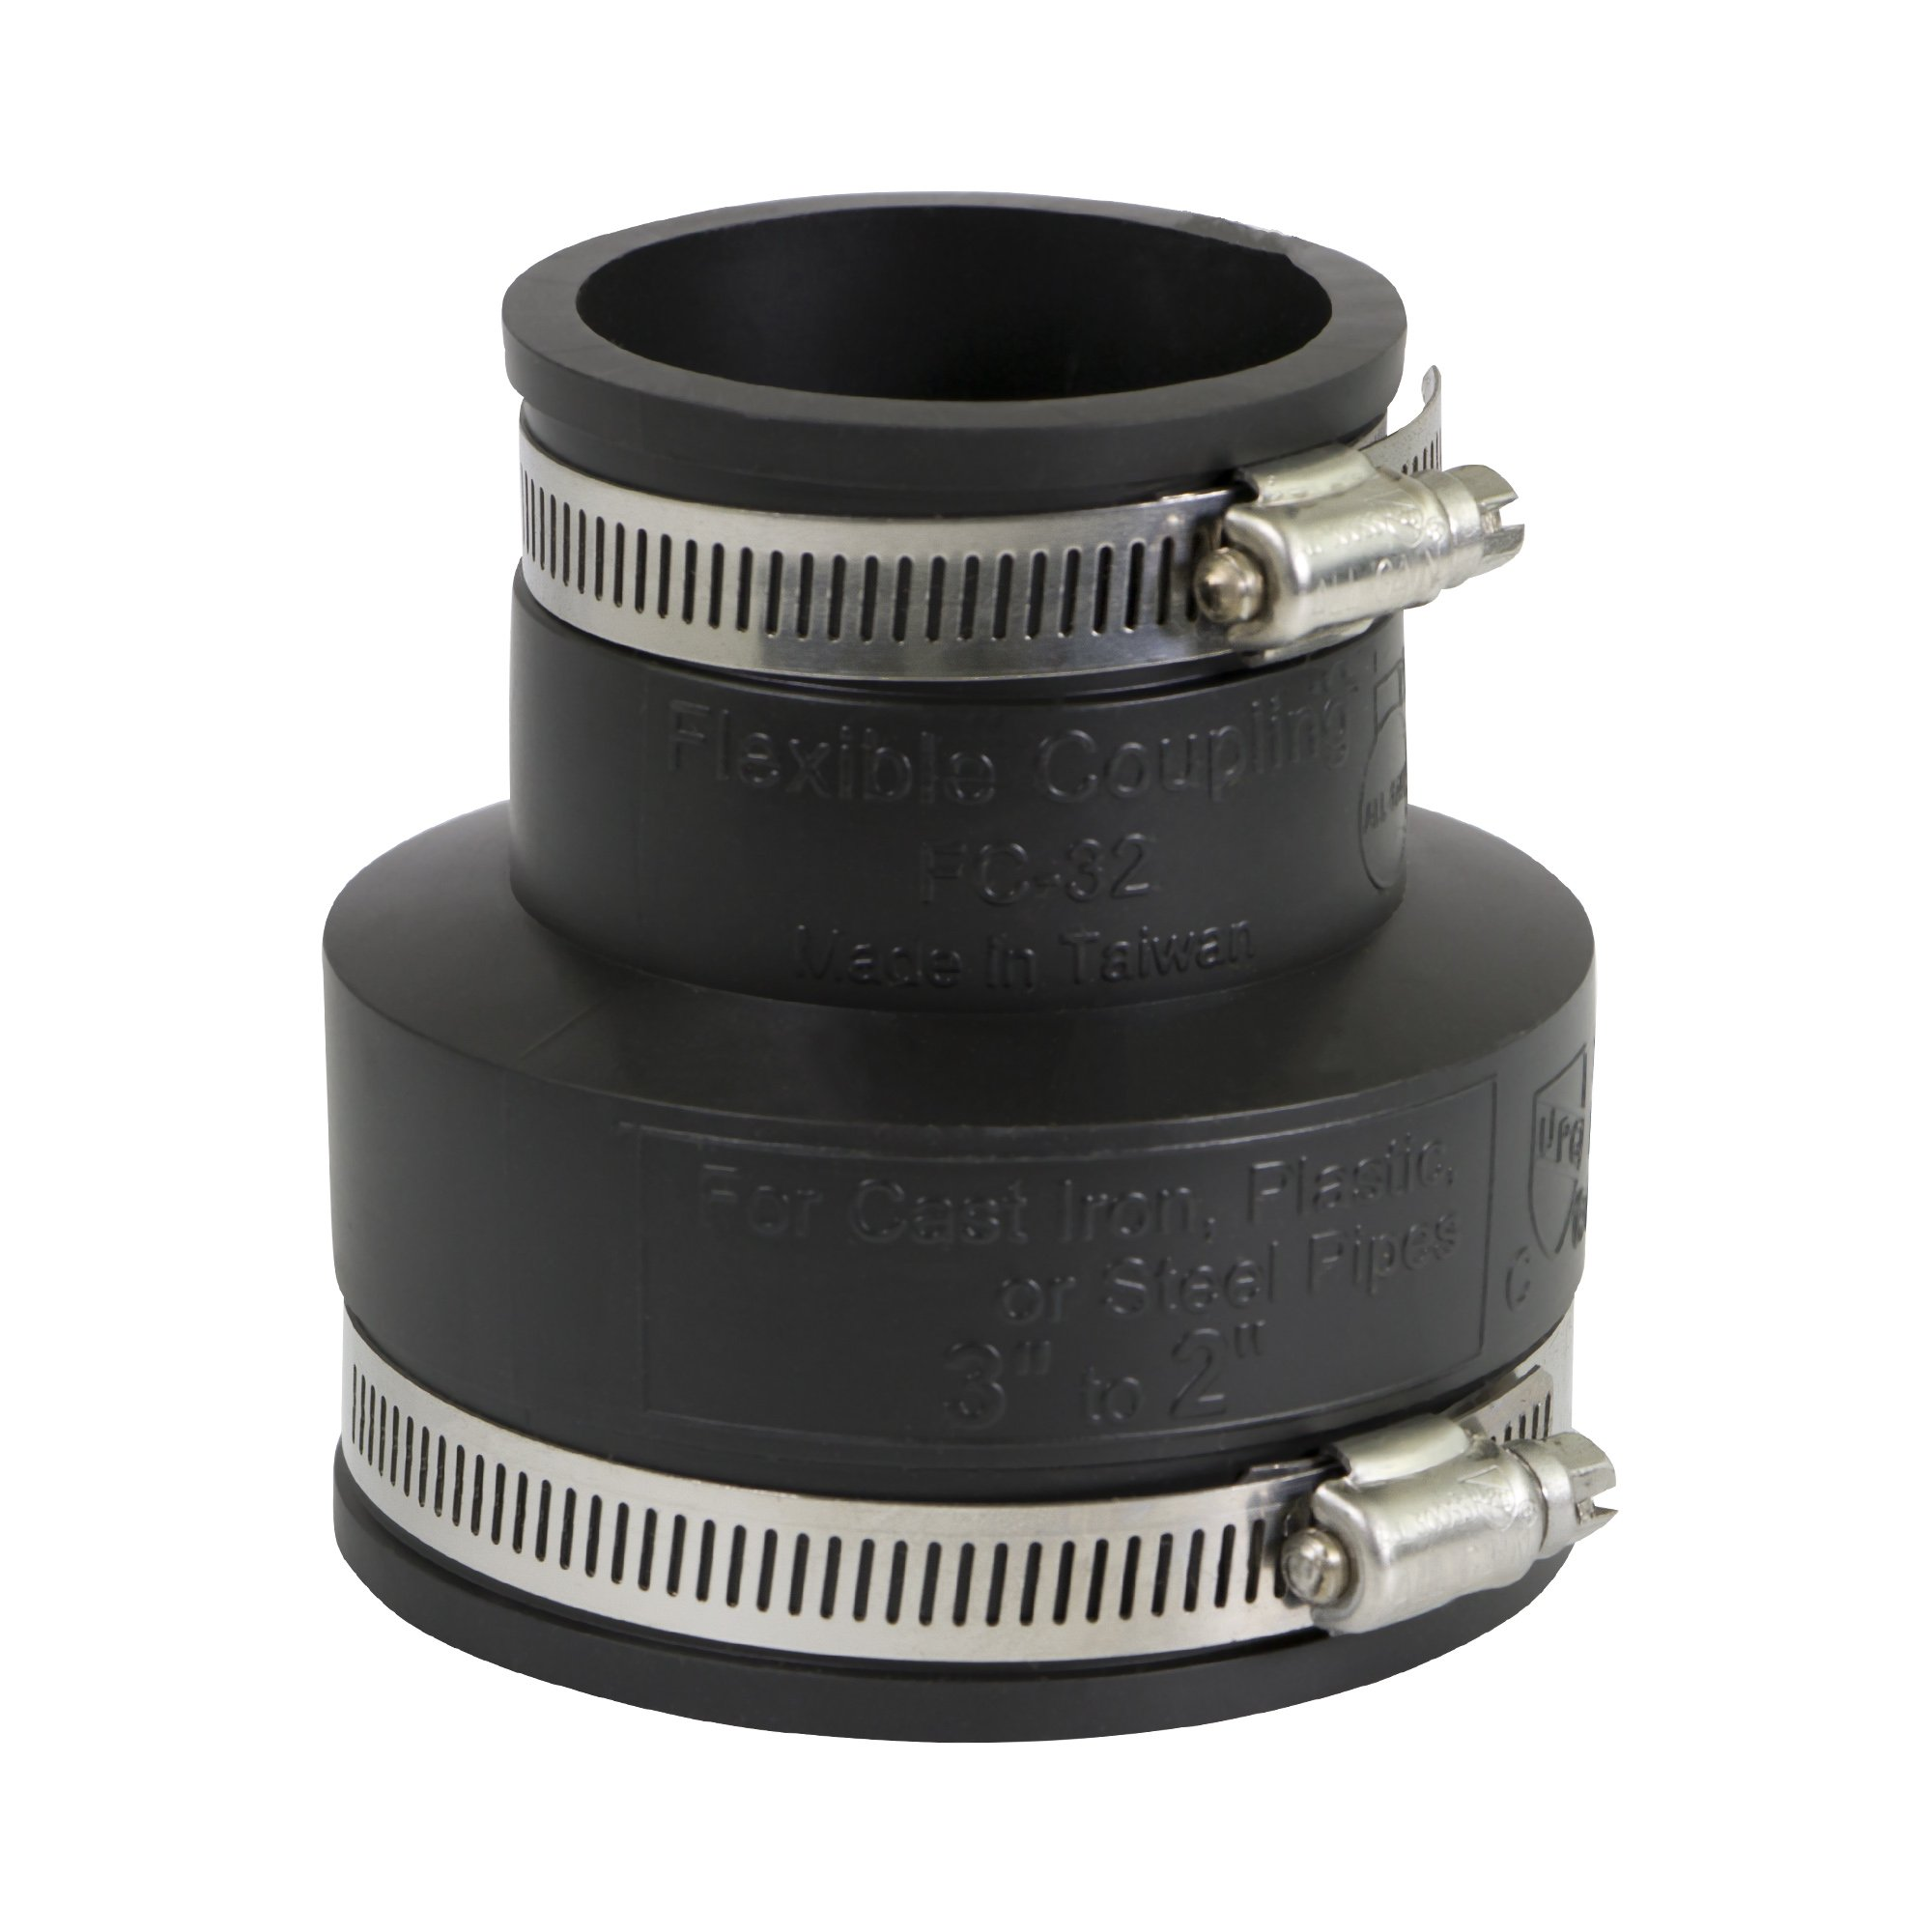 EVERCONNECT 4833x4 Flexible PVC Reducing Coupling with Stainless Steel clamps, 3 x 2, Black (Pack of 4)